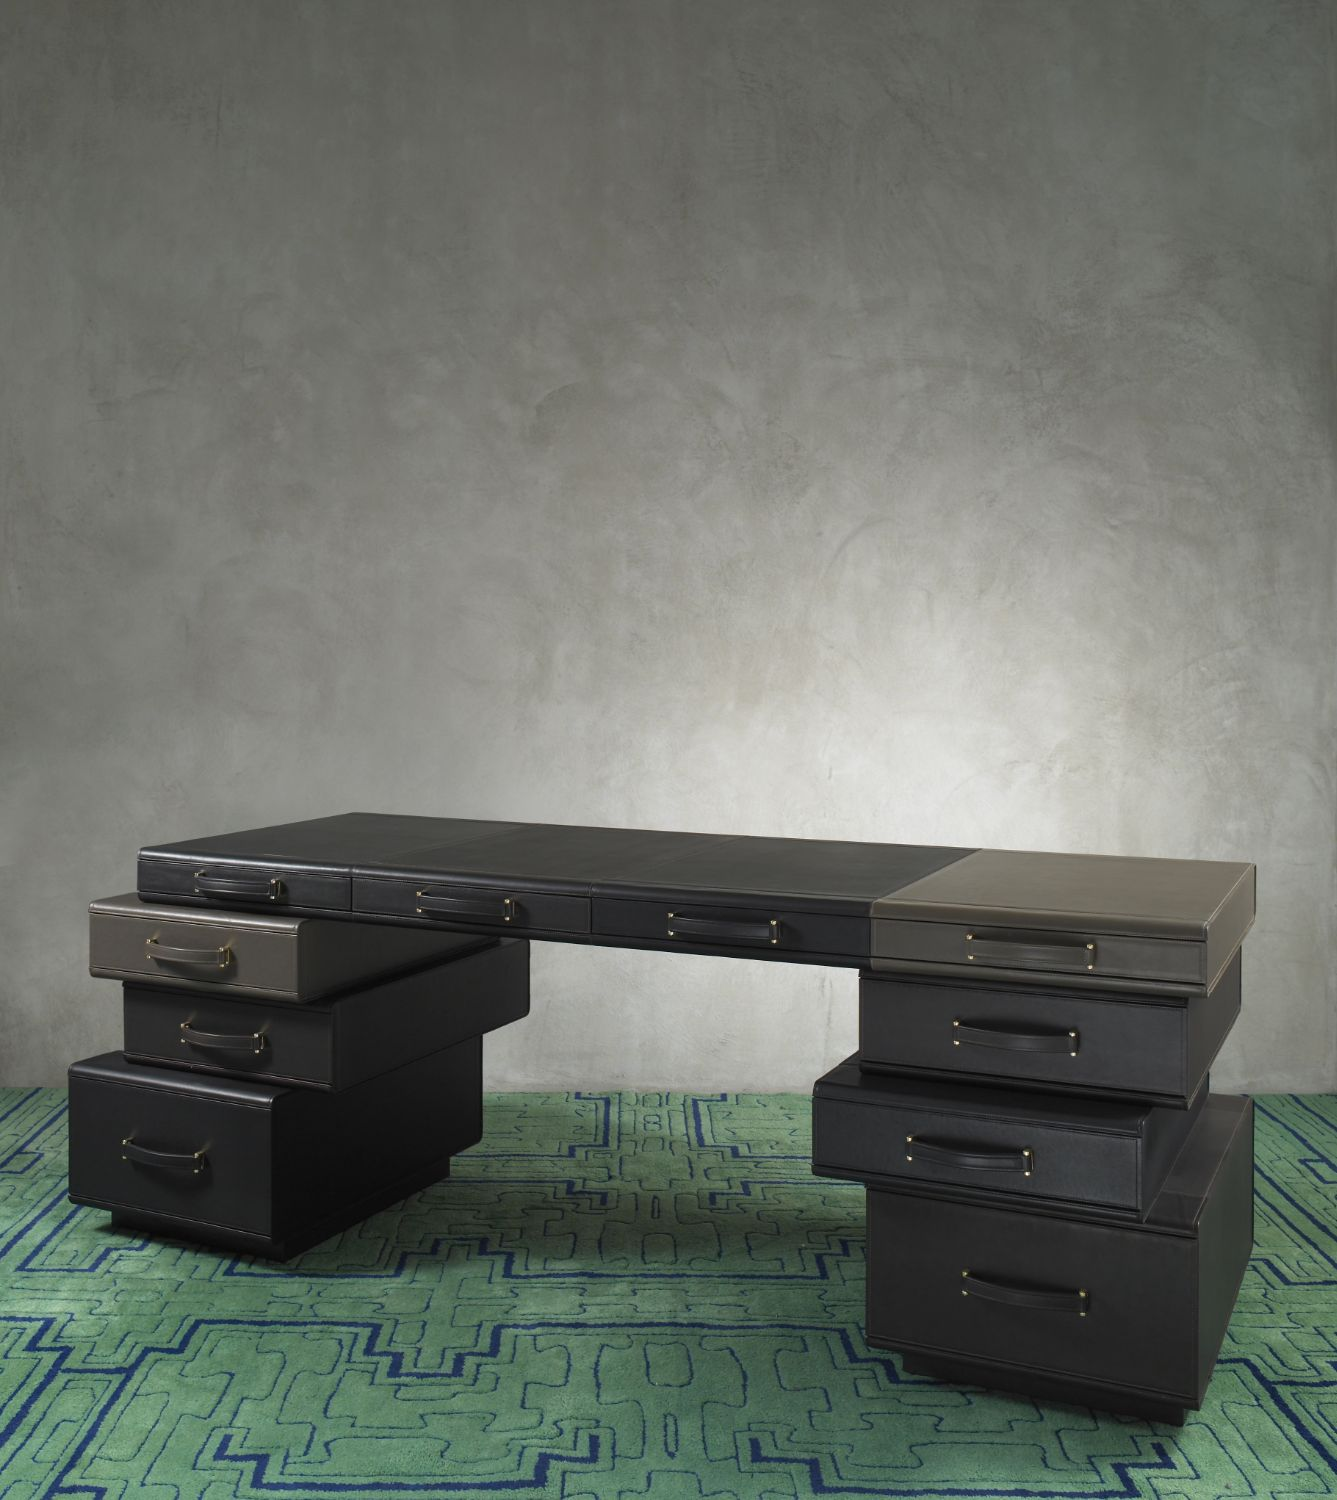 Desk of Briefcases